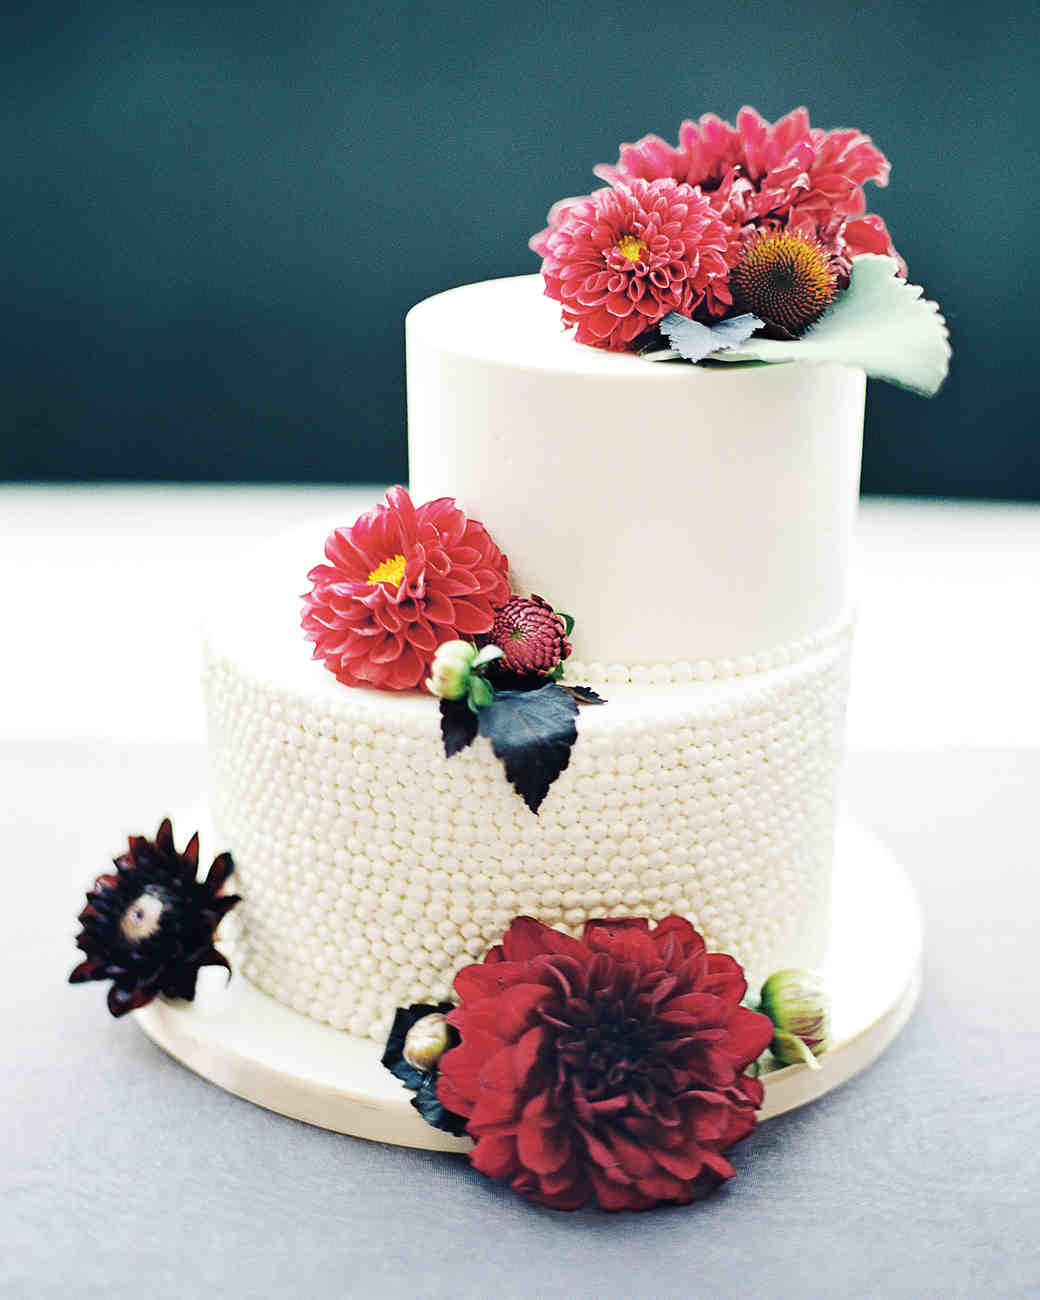 Wedding Cakes With Flowers On Top: 62 Fresh Floral Wedding Cakes